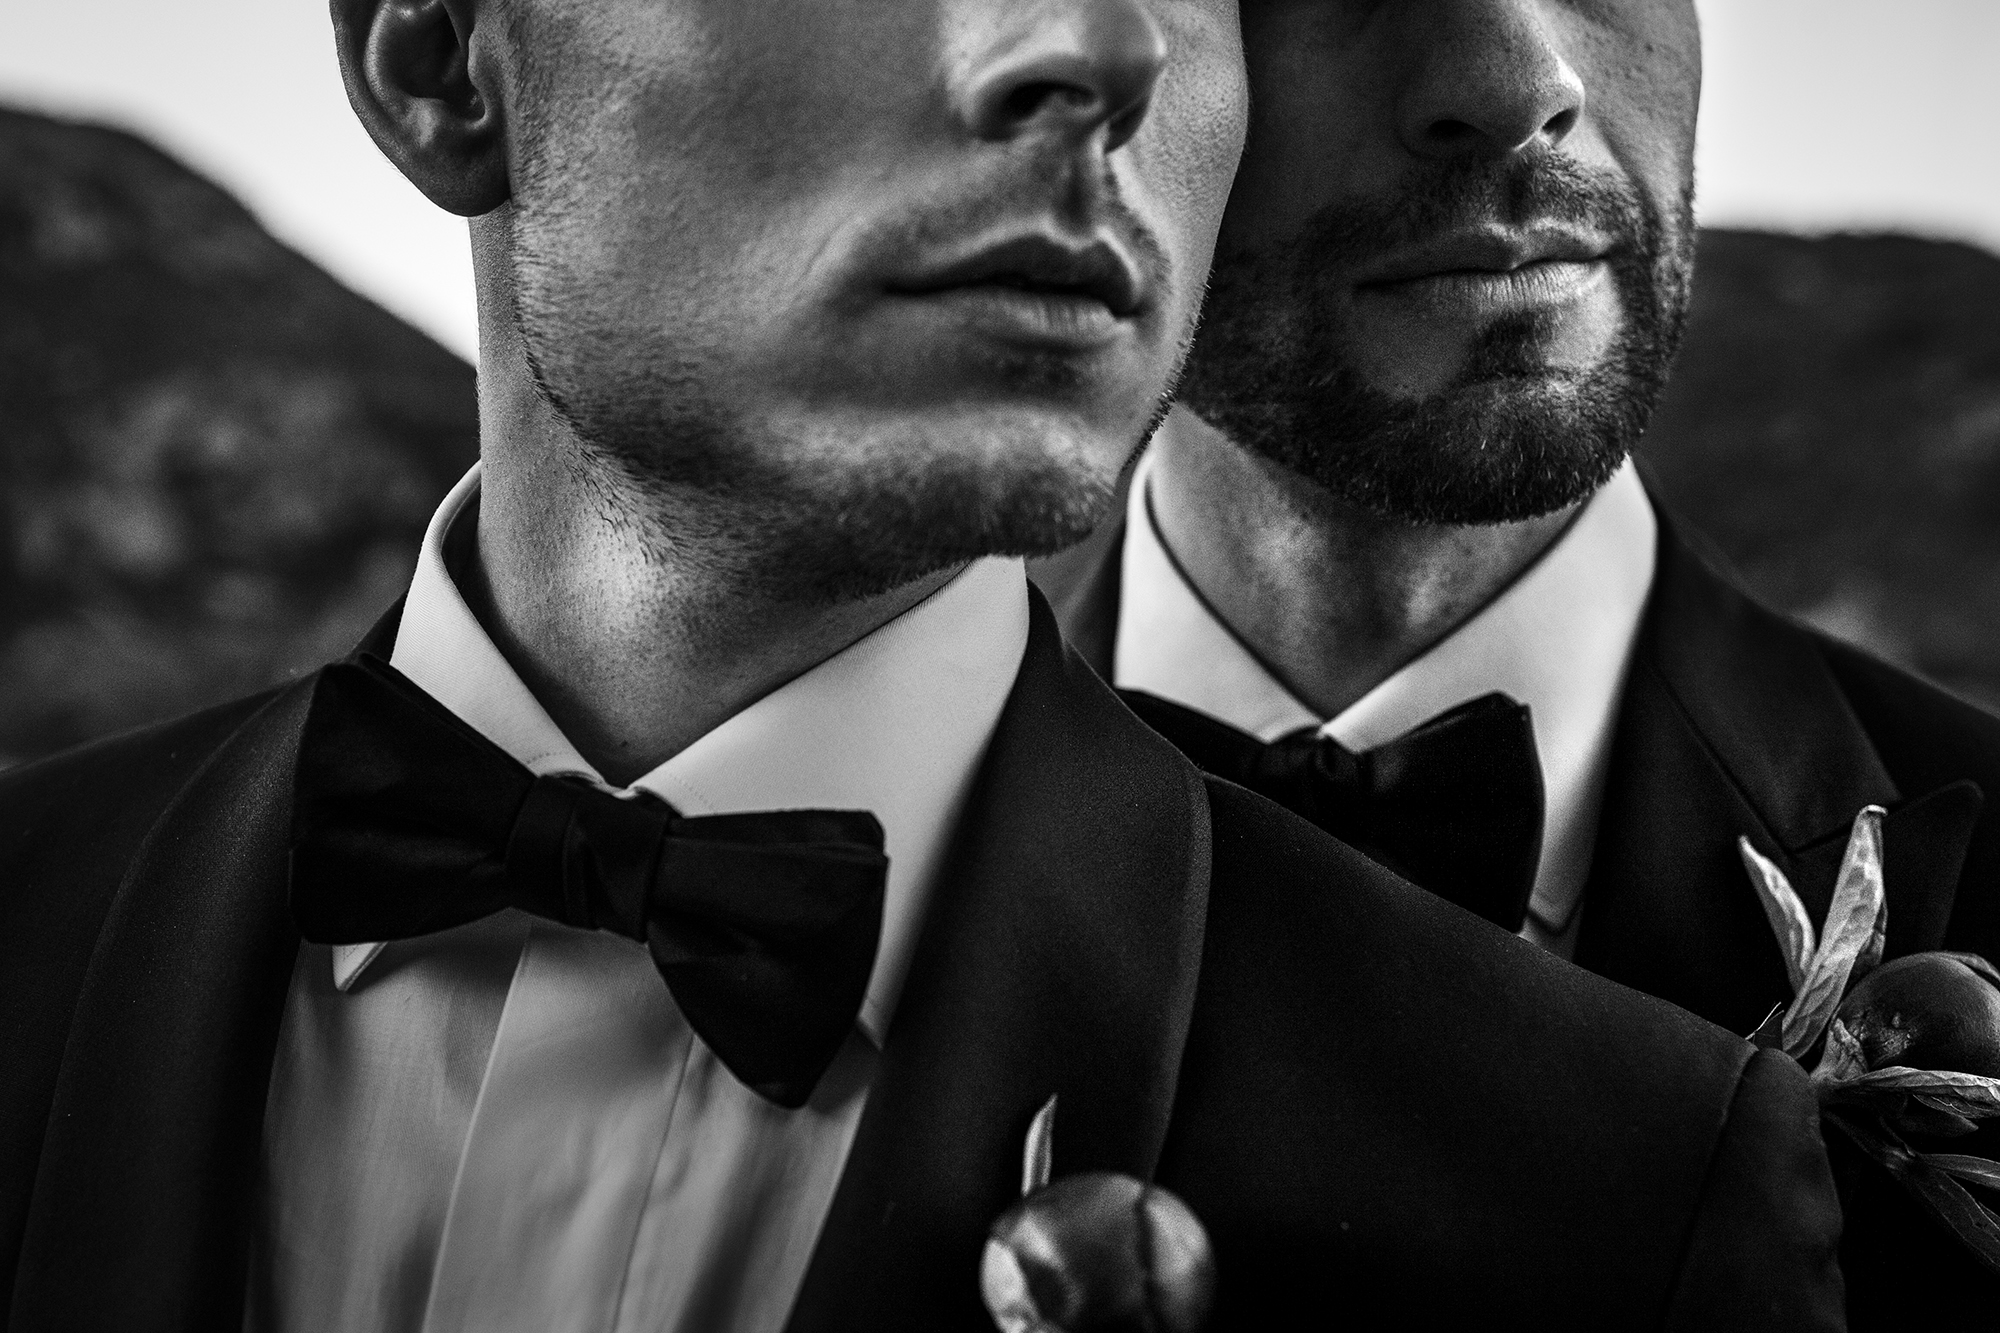 Two grooms in tuxes - photo by Victor Lax